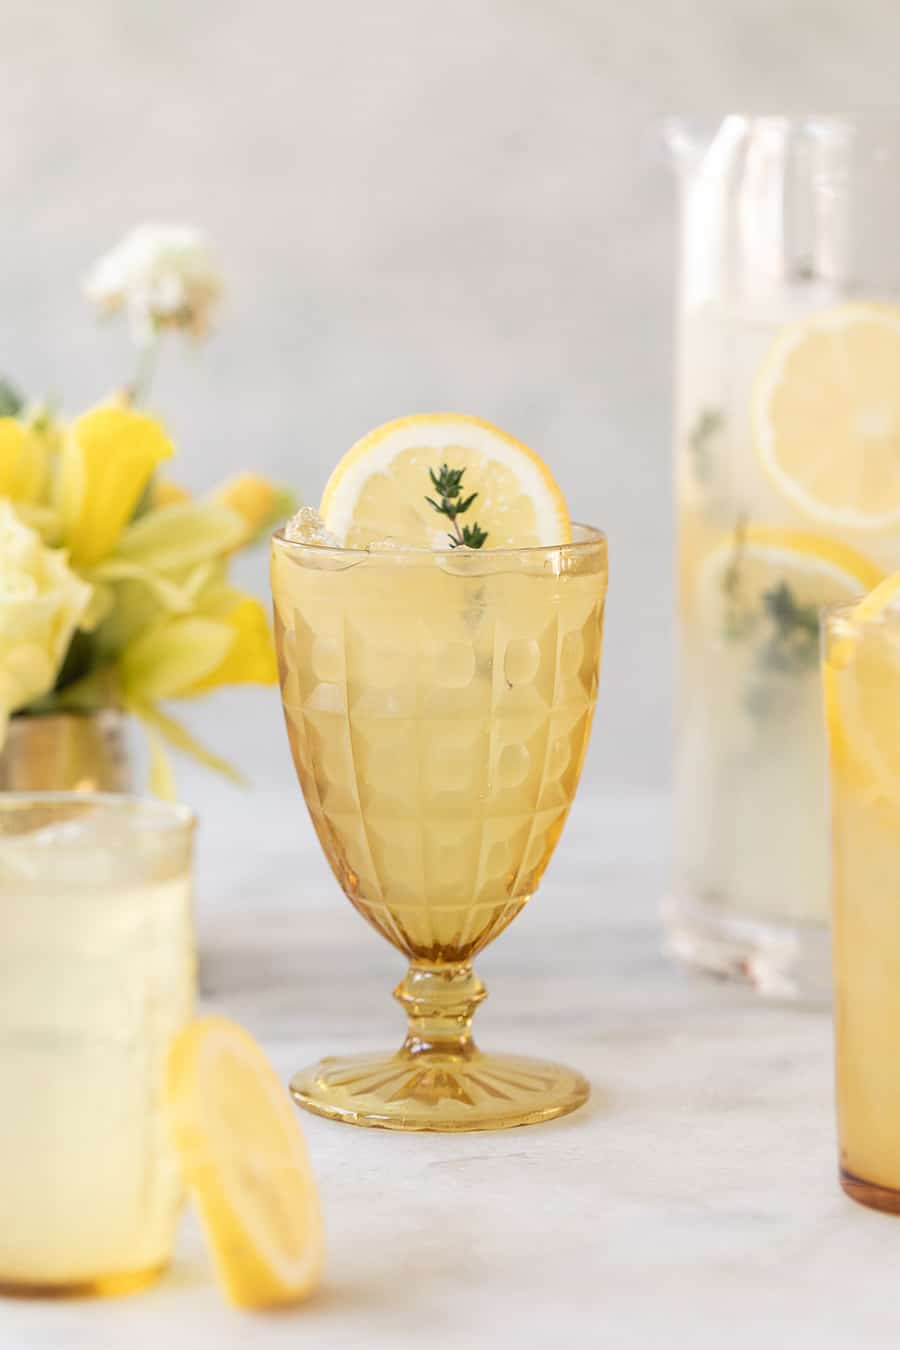 Spiked lemonade in yellow glasses with sprig of thyme